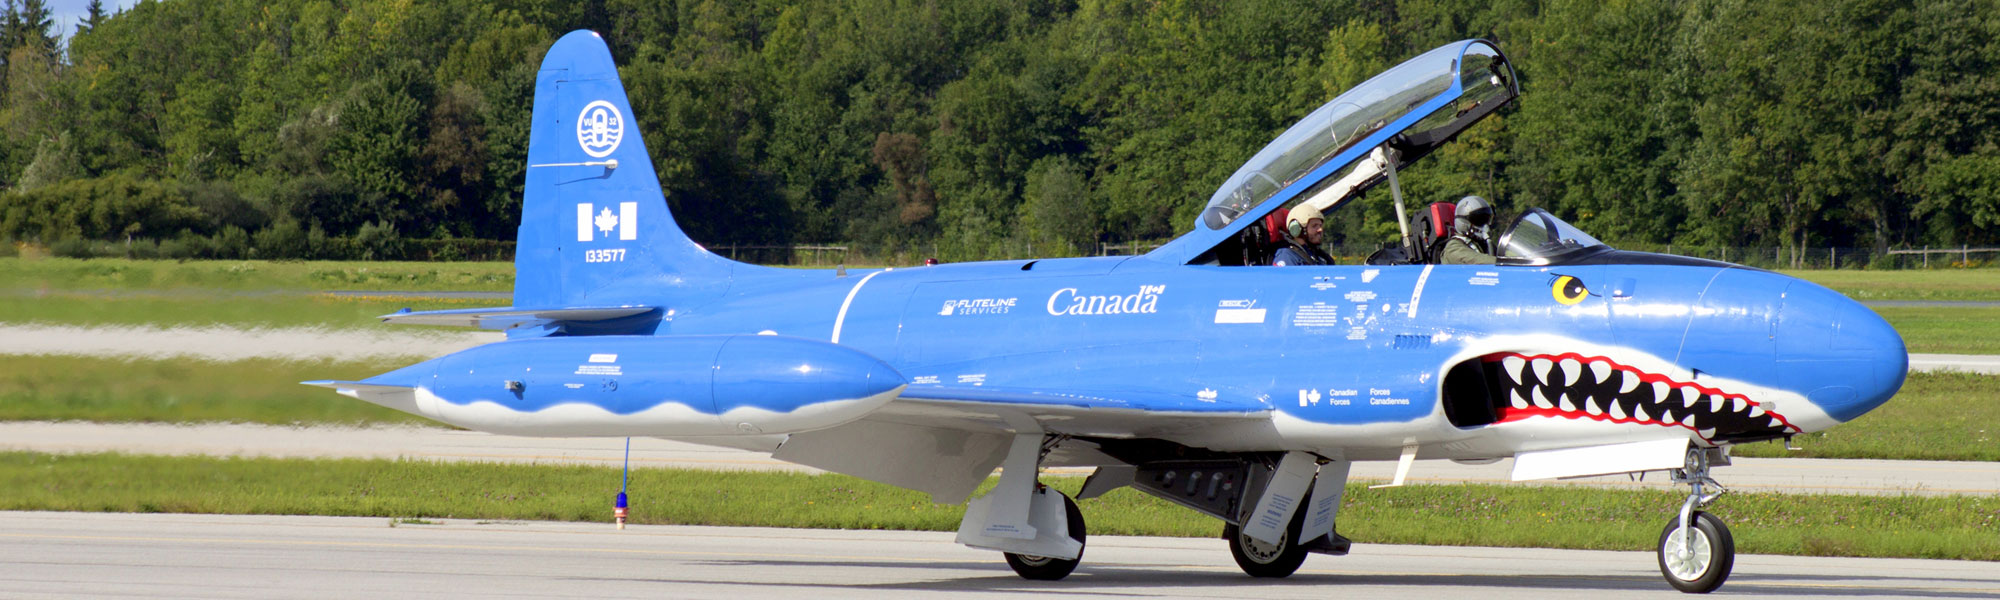 T-33 (T-Bird) in Canada fliegen